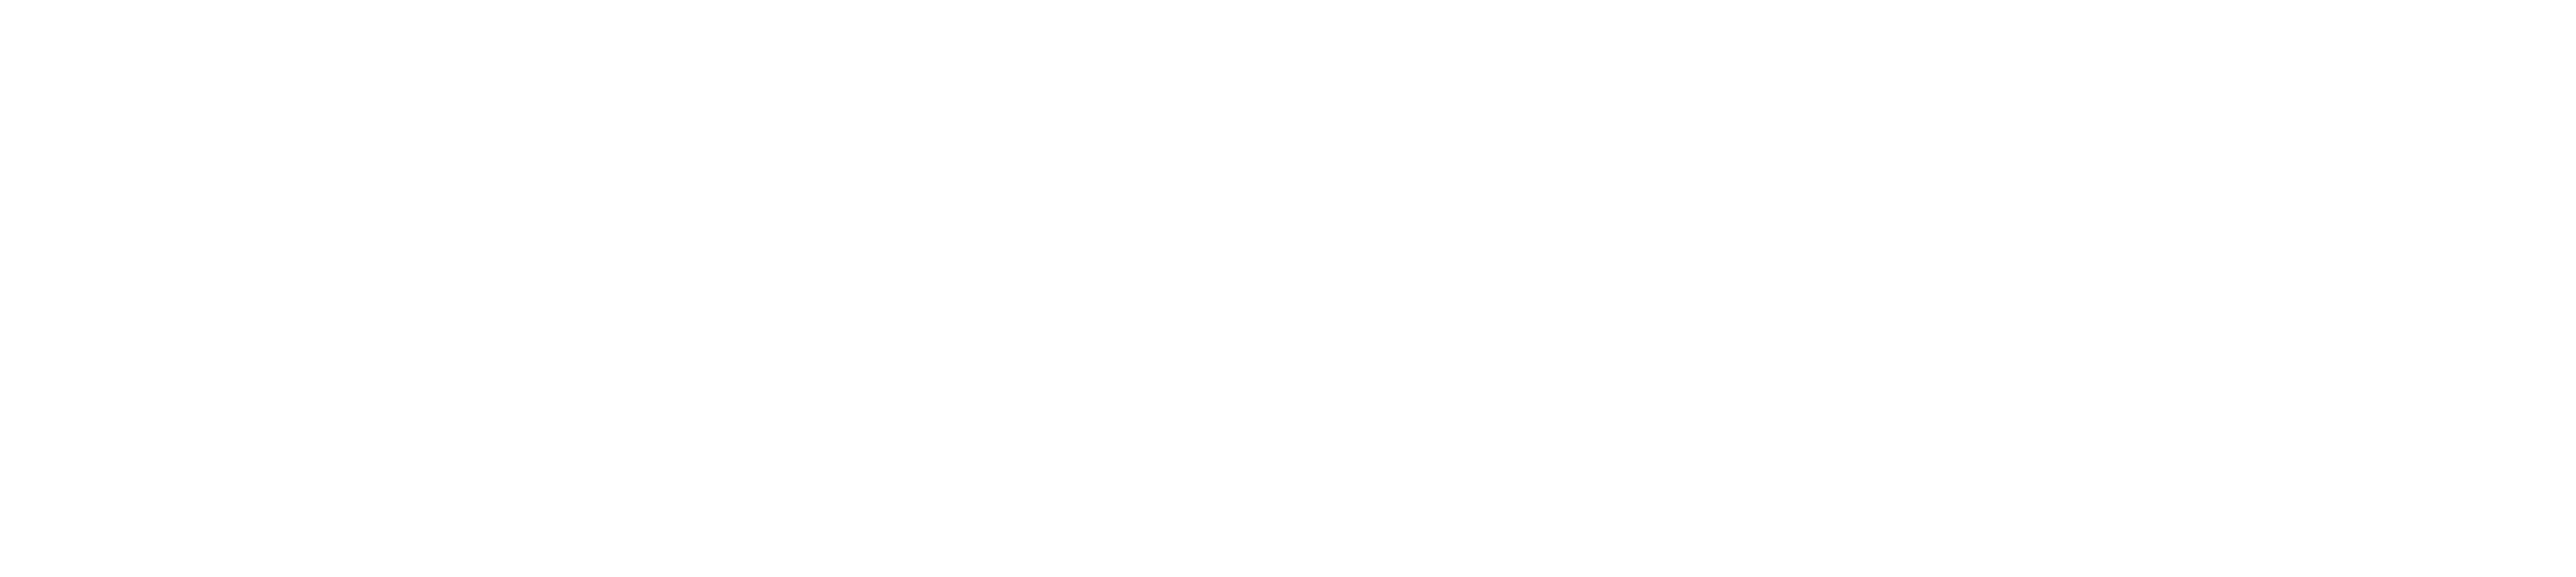 secondary-wide-white-outline